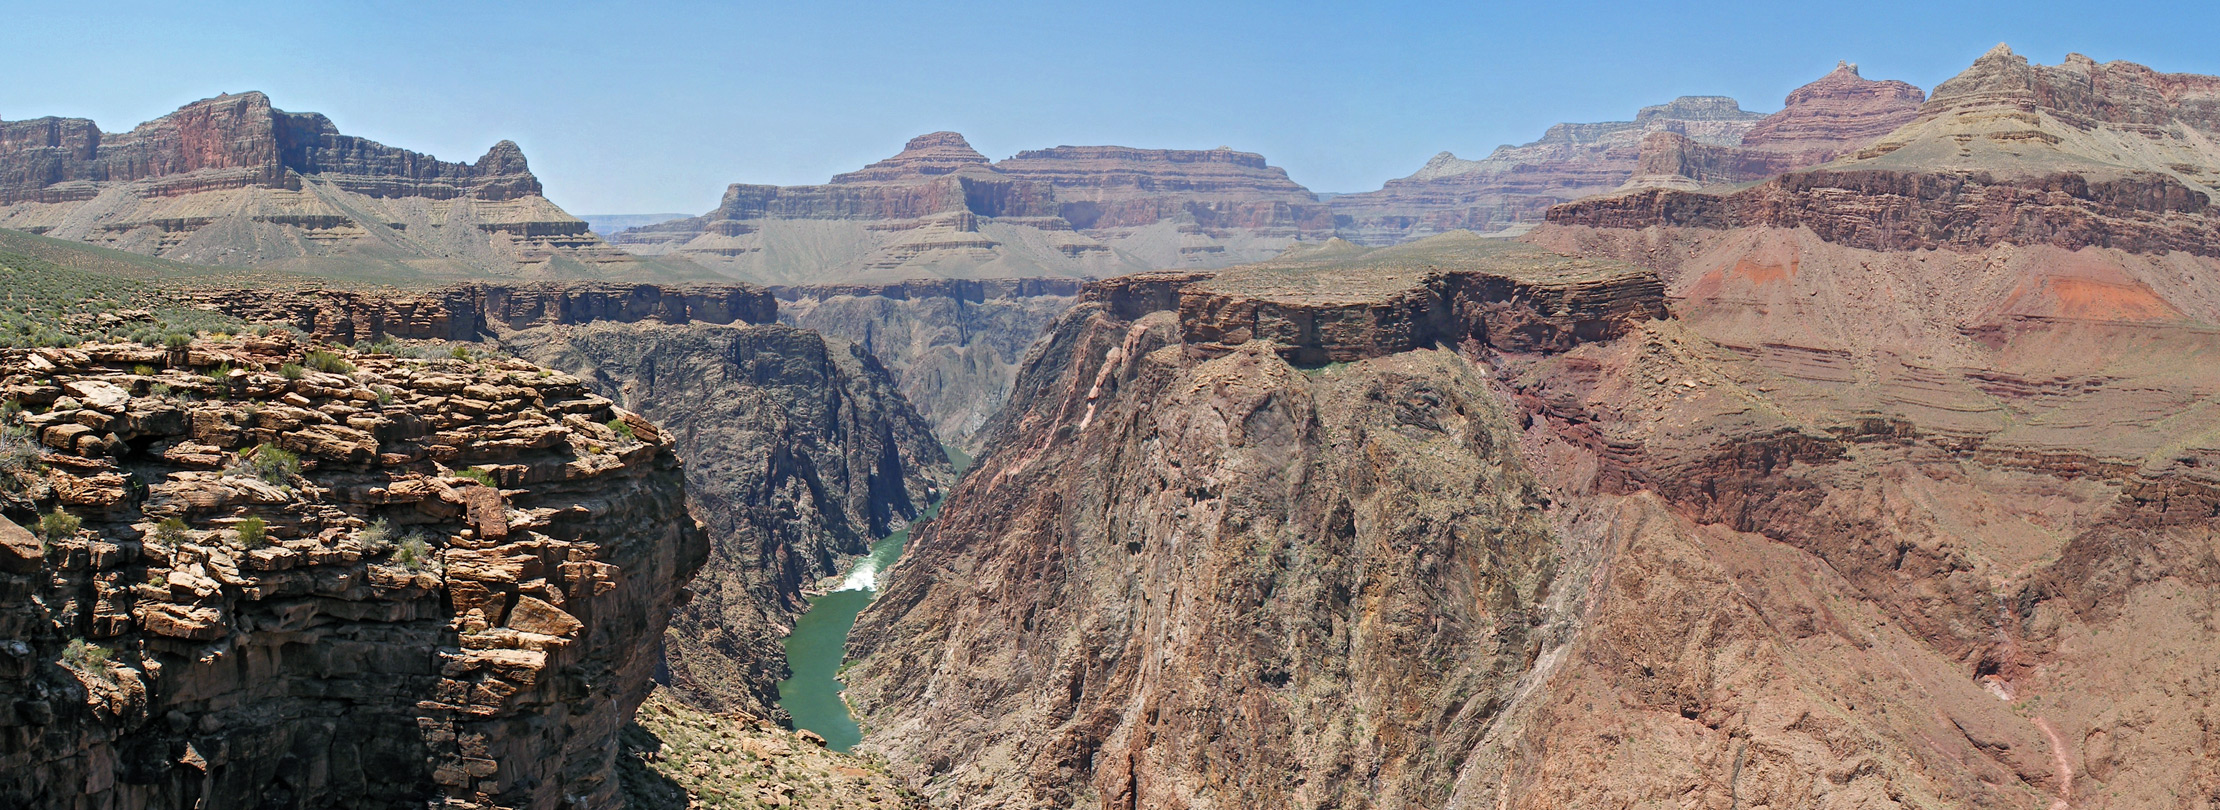 Colorado River, from Plateau Point